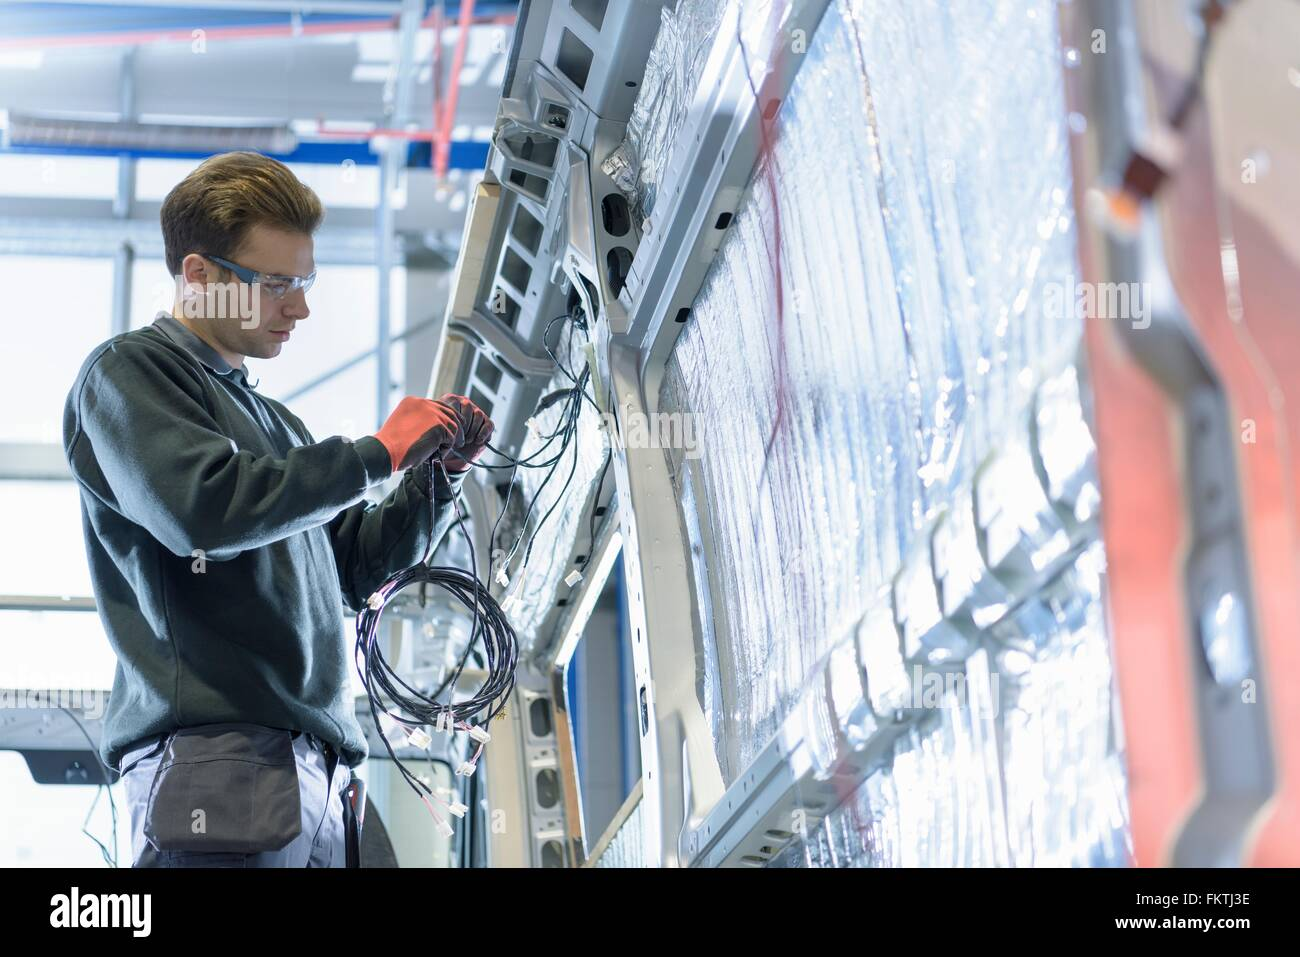 Worker fitting electrics on motorhome production line - Stock Image